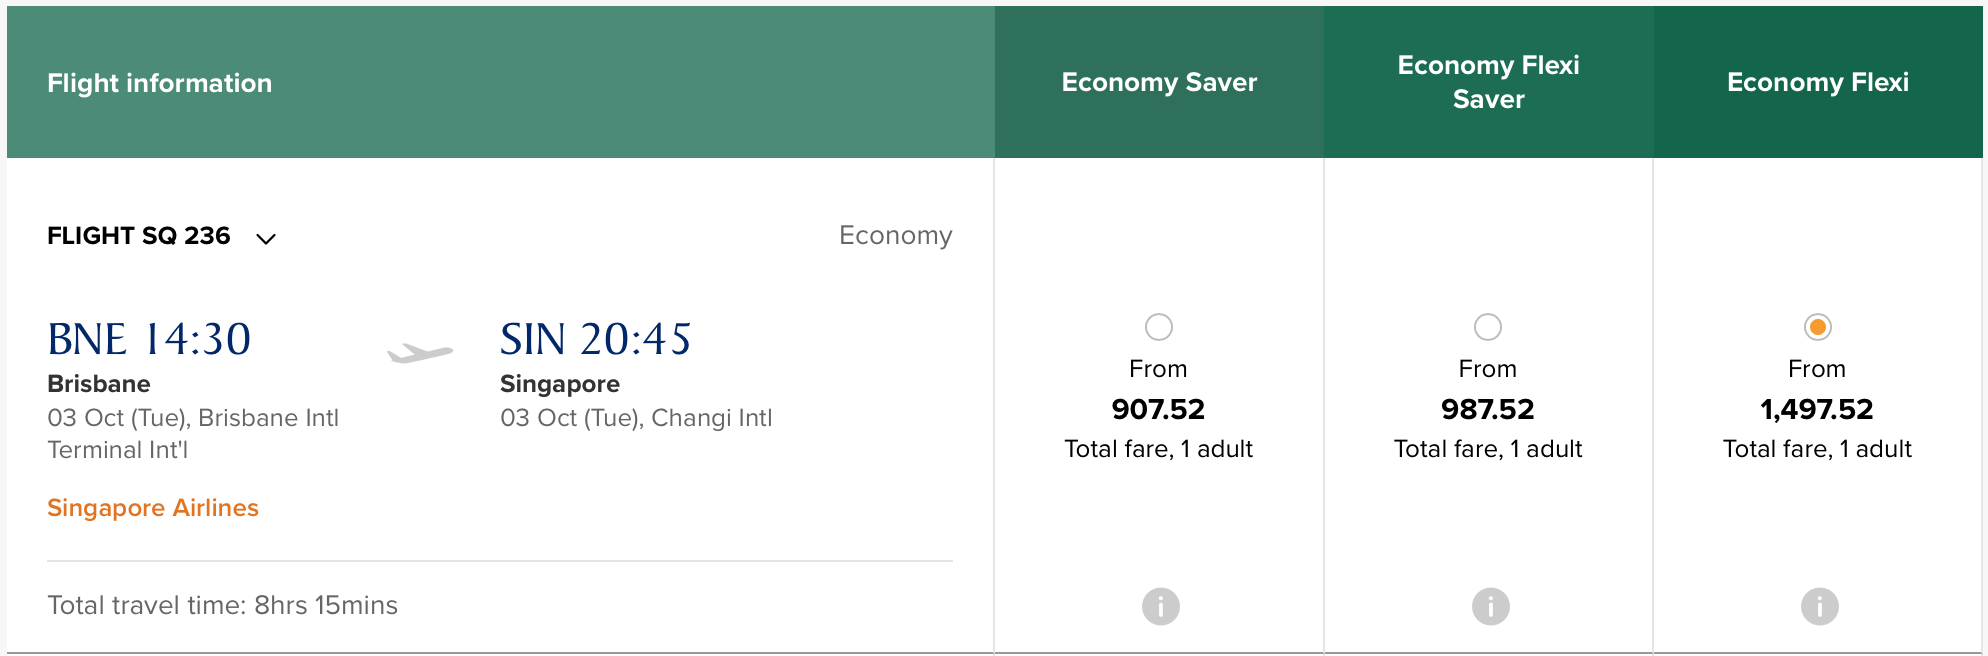 Singapore Airlines Economy Flexi booking